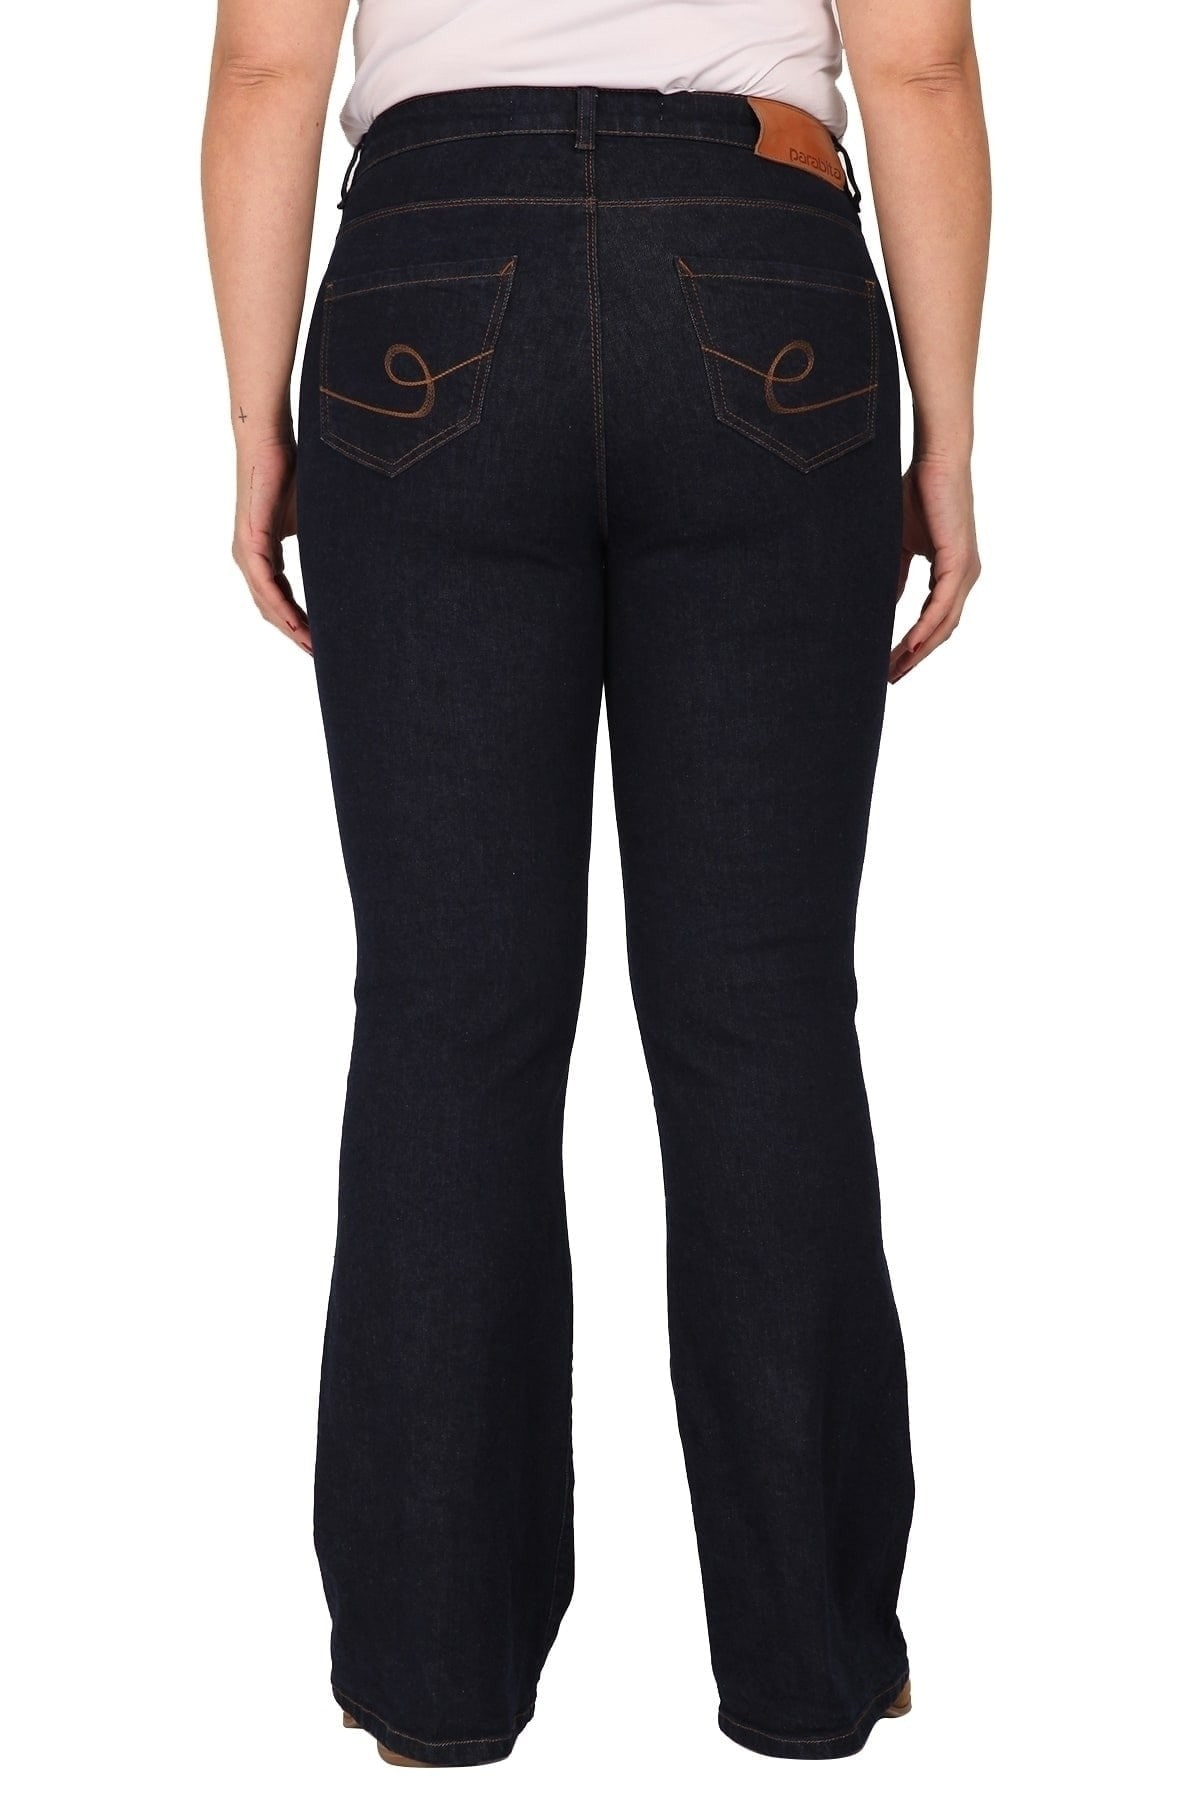 Flare dark blue fit jeans